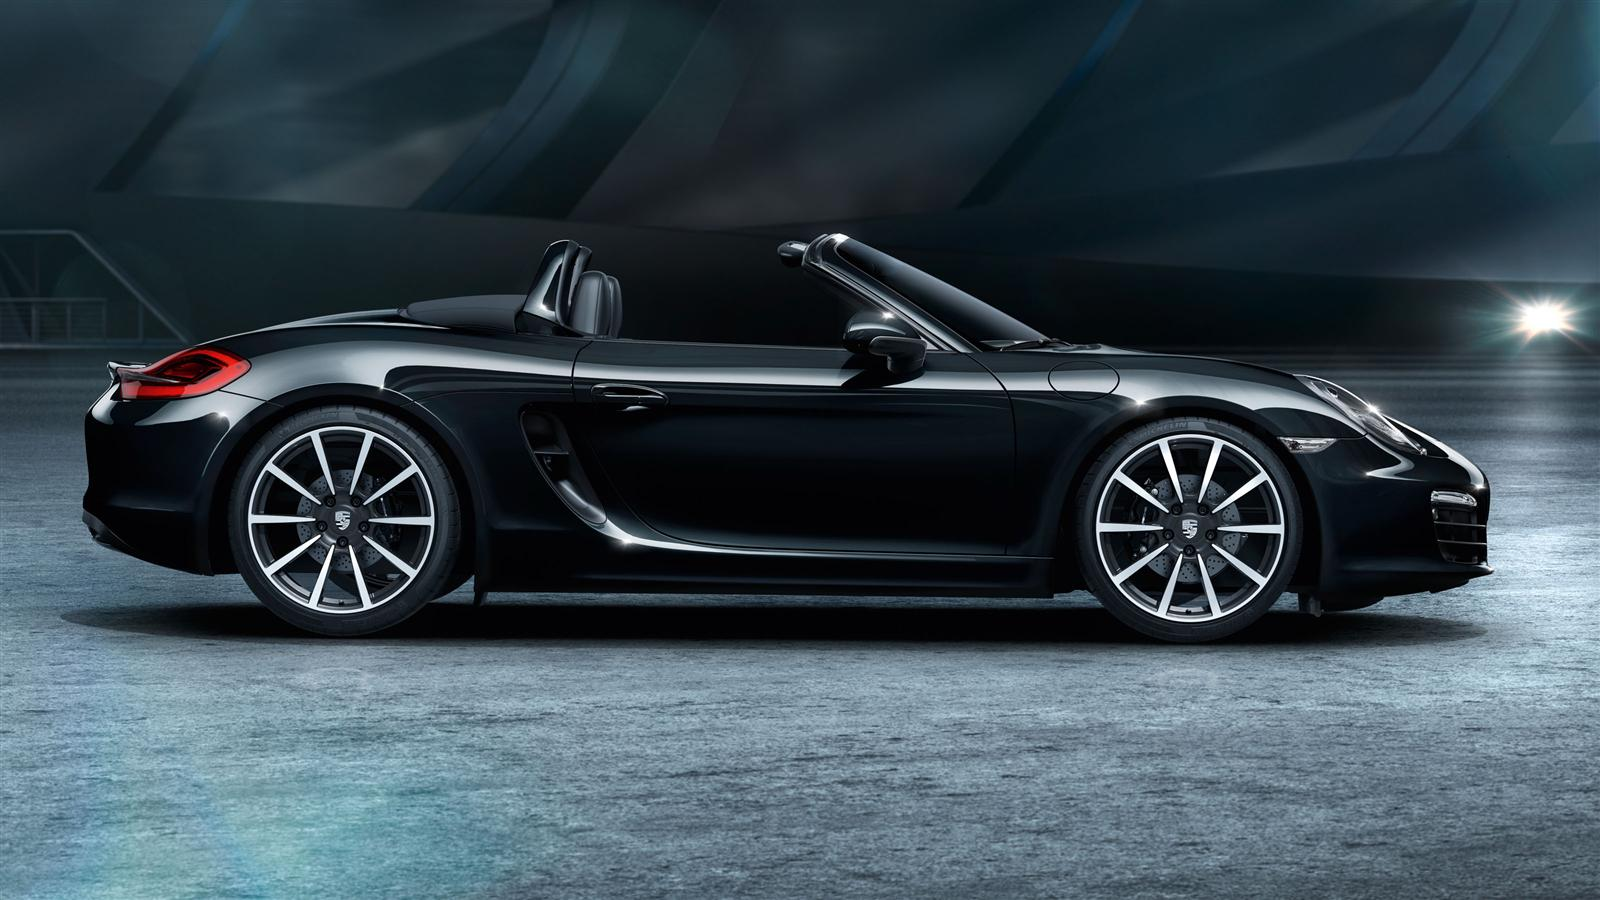 2016 porsche boxster black edition review - top speed